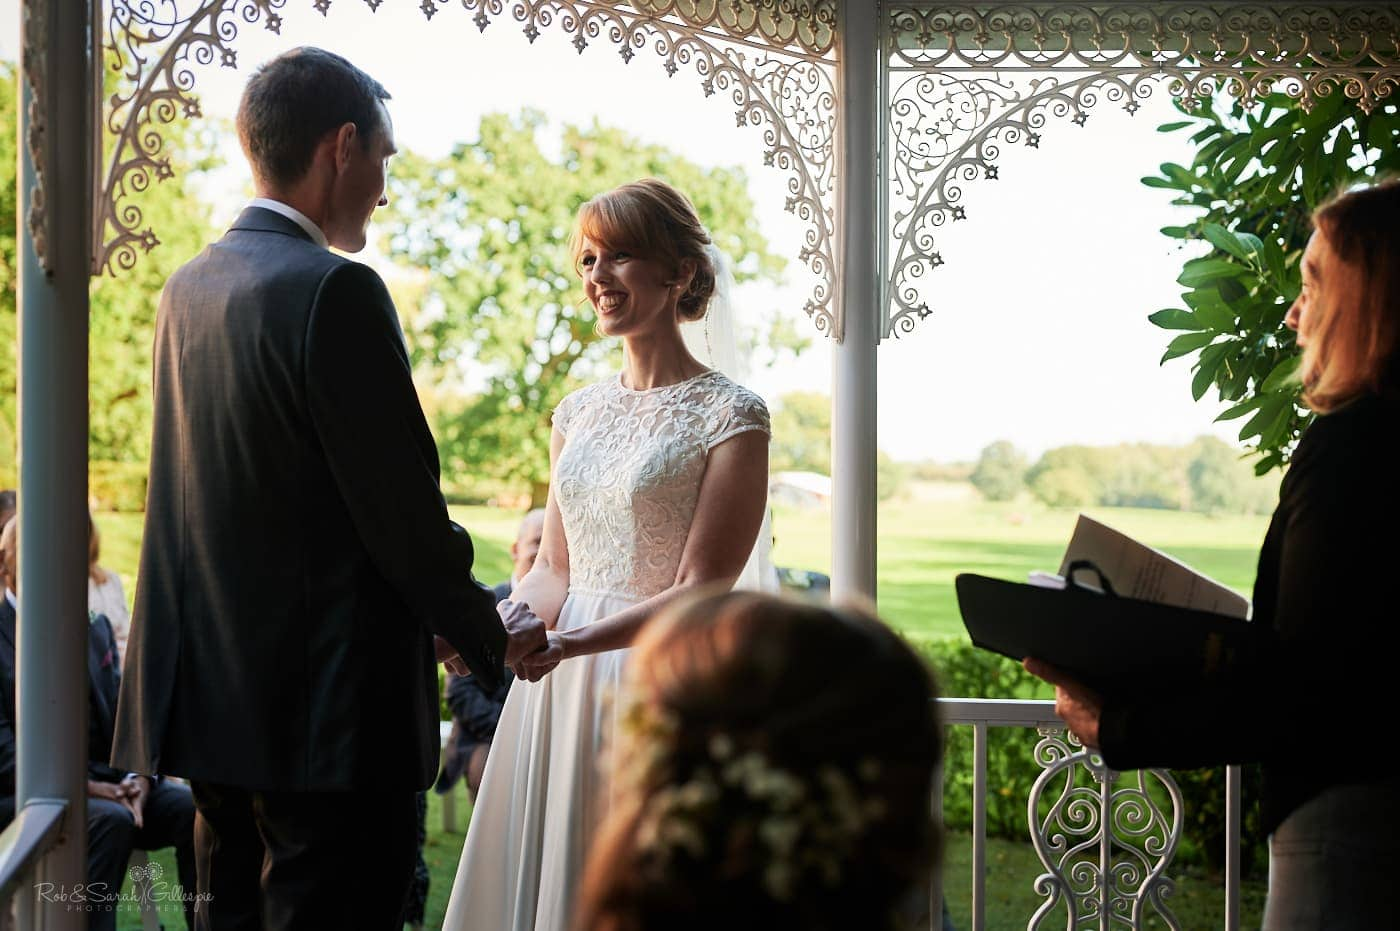 Bride and groom hold hands as they exchange wedding vows